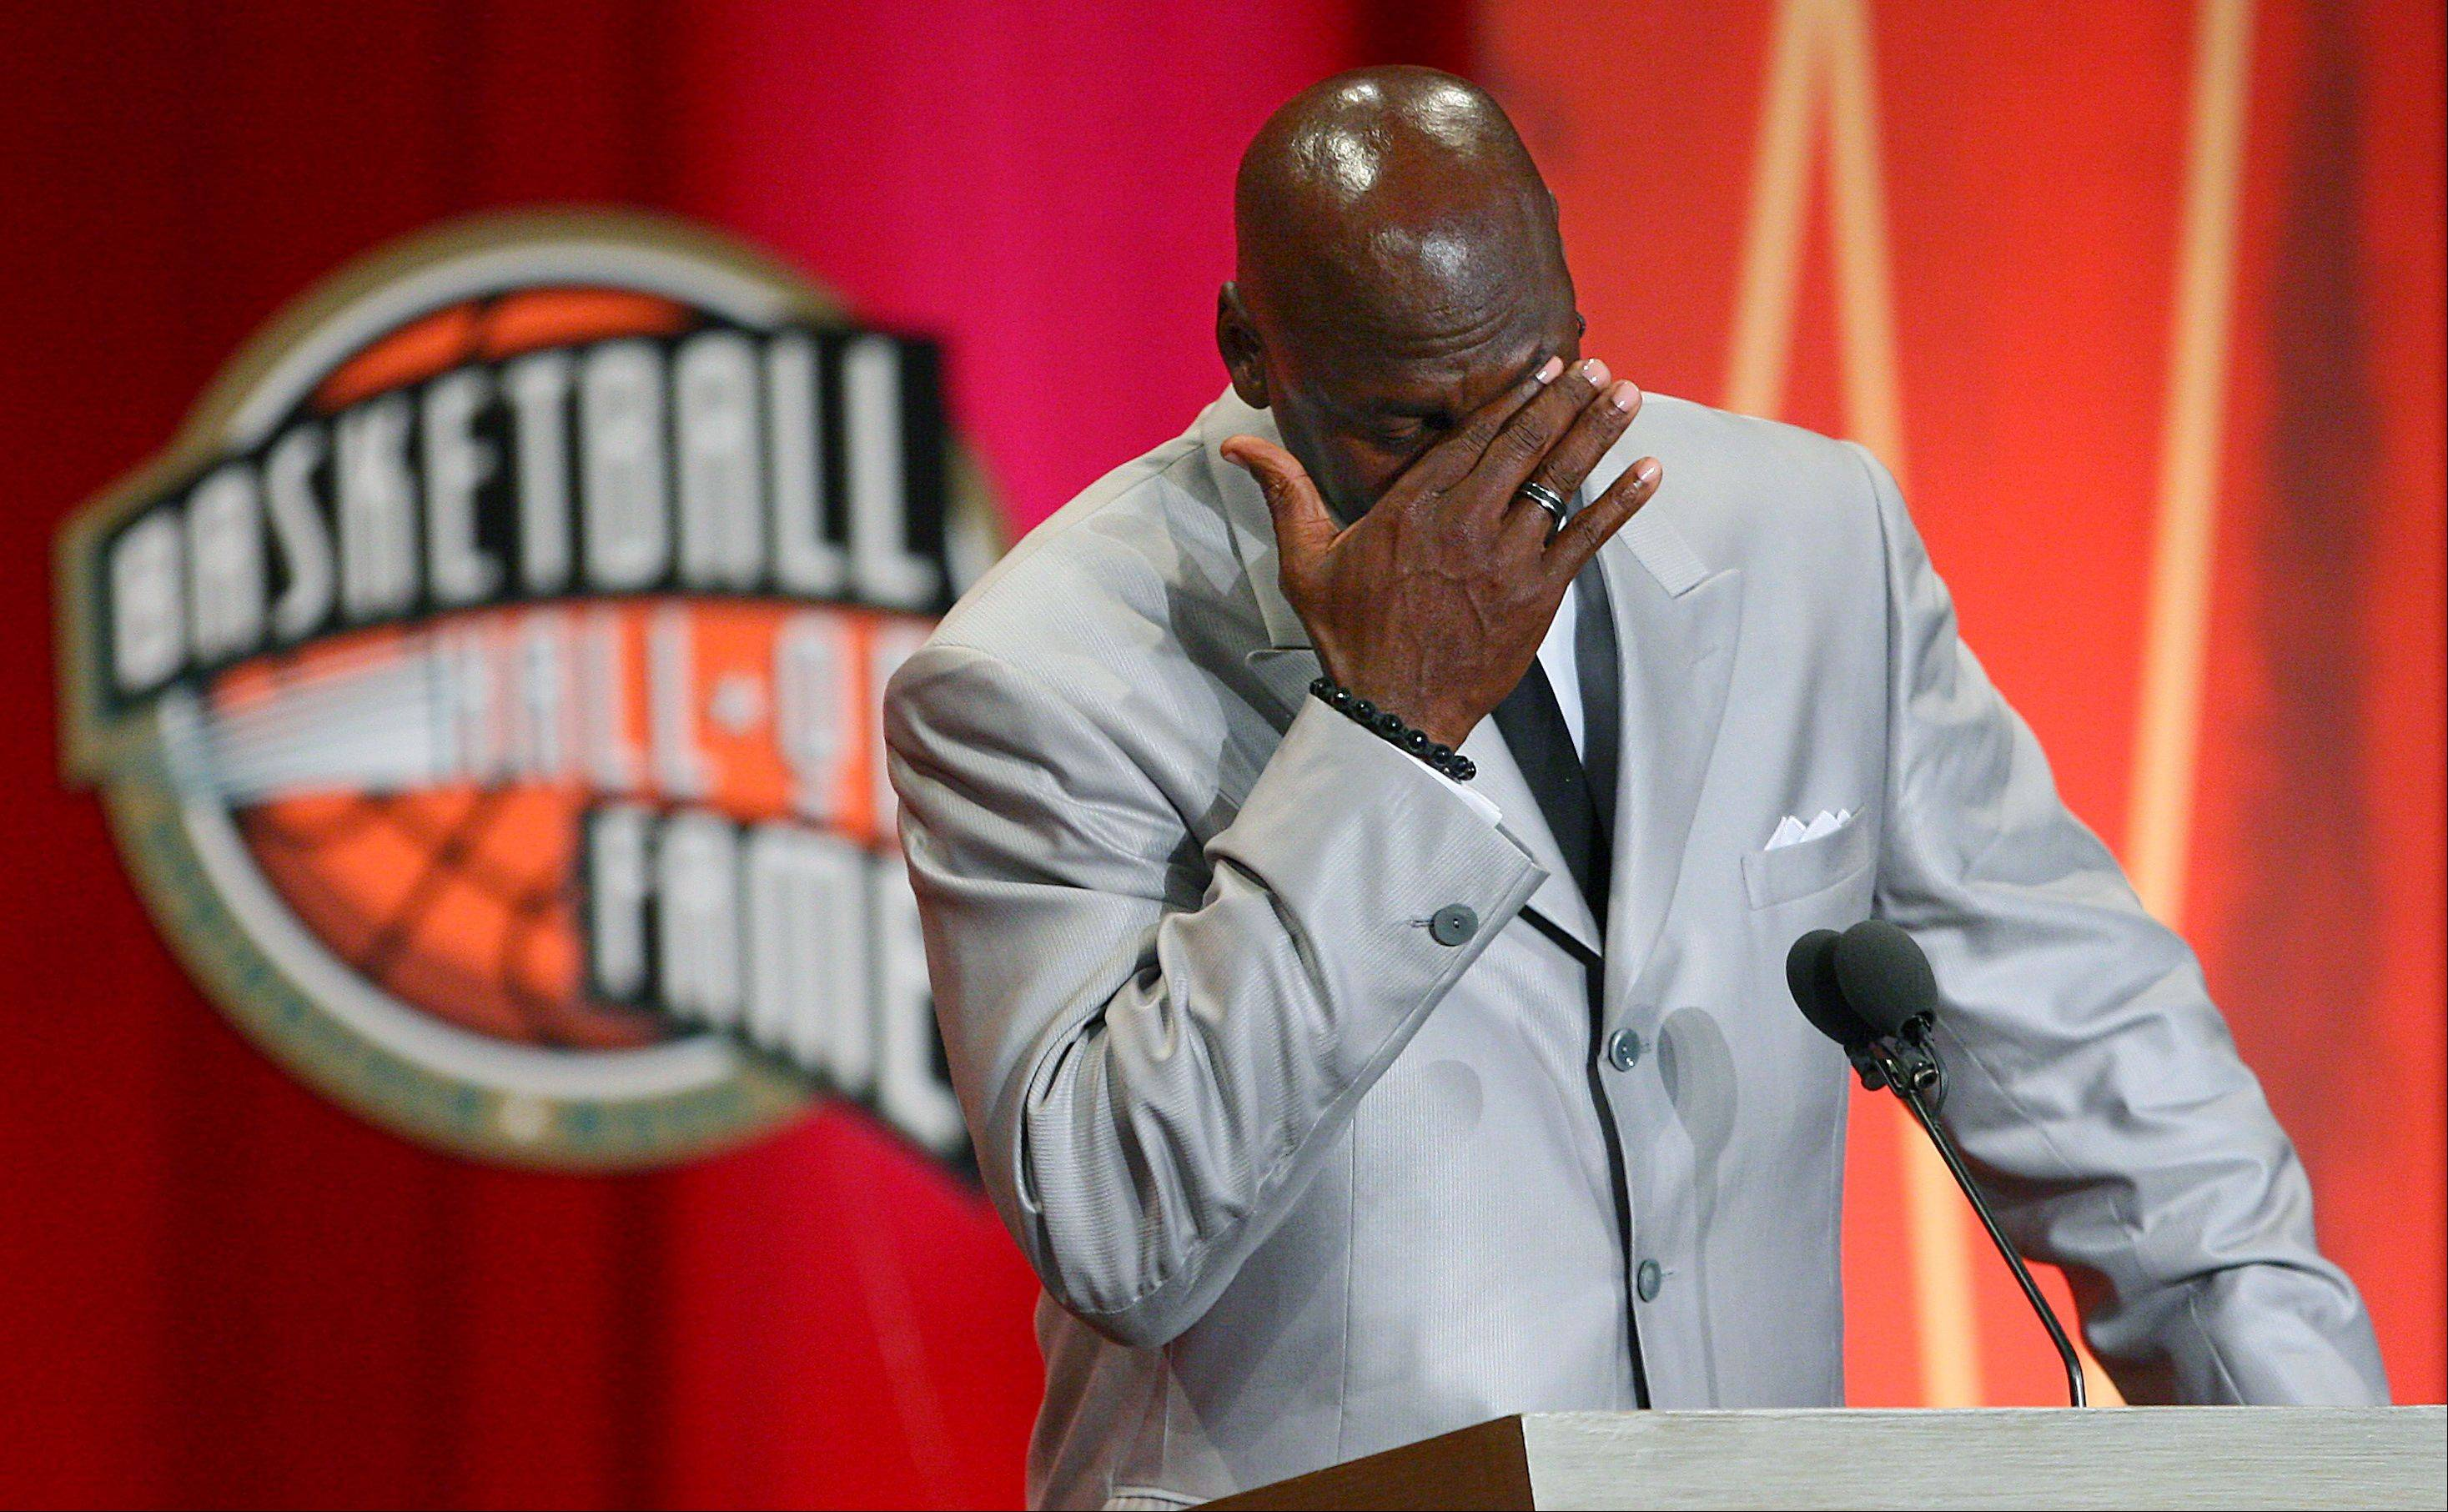 Former Chicago Bulls and Washington Wizards guard Michael Jordan becomes emotional as he take the stage during his enshrinement ceremony into the Naismith Basketball Hall of Fame in Springfield, Mass., Friday, Sept. 11, 2009.